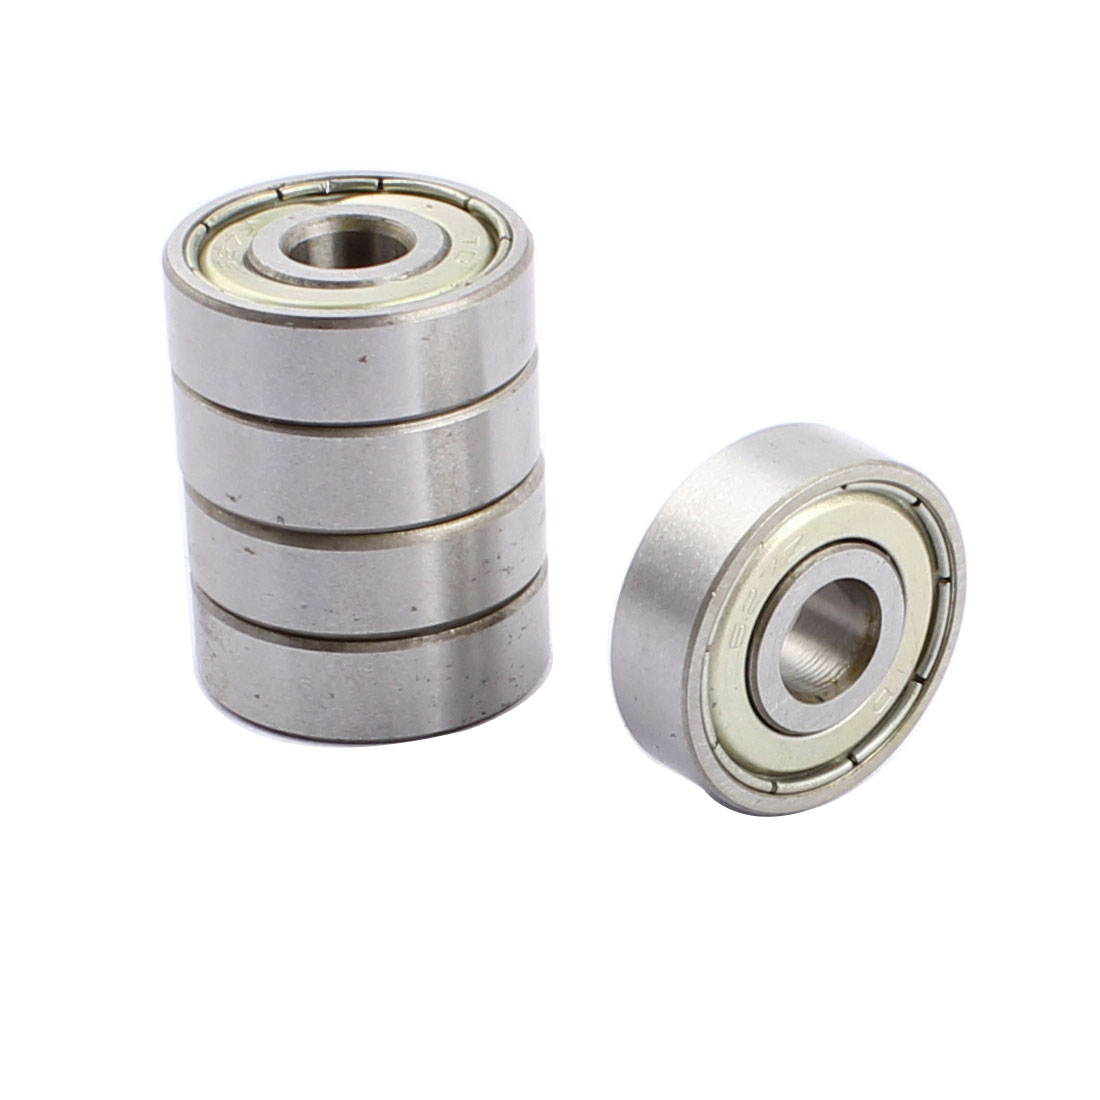 uxcell 22mm x 7mm x 7mm Double Shielded <font><b>627Z</b></font> Metal Deep Groove Guide Pulley Rail Ball Wheel <font><b>Bearings</b></font> 5pcs image